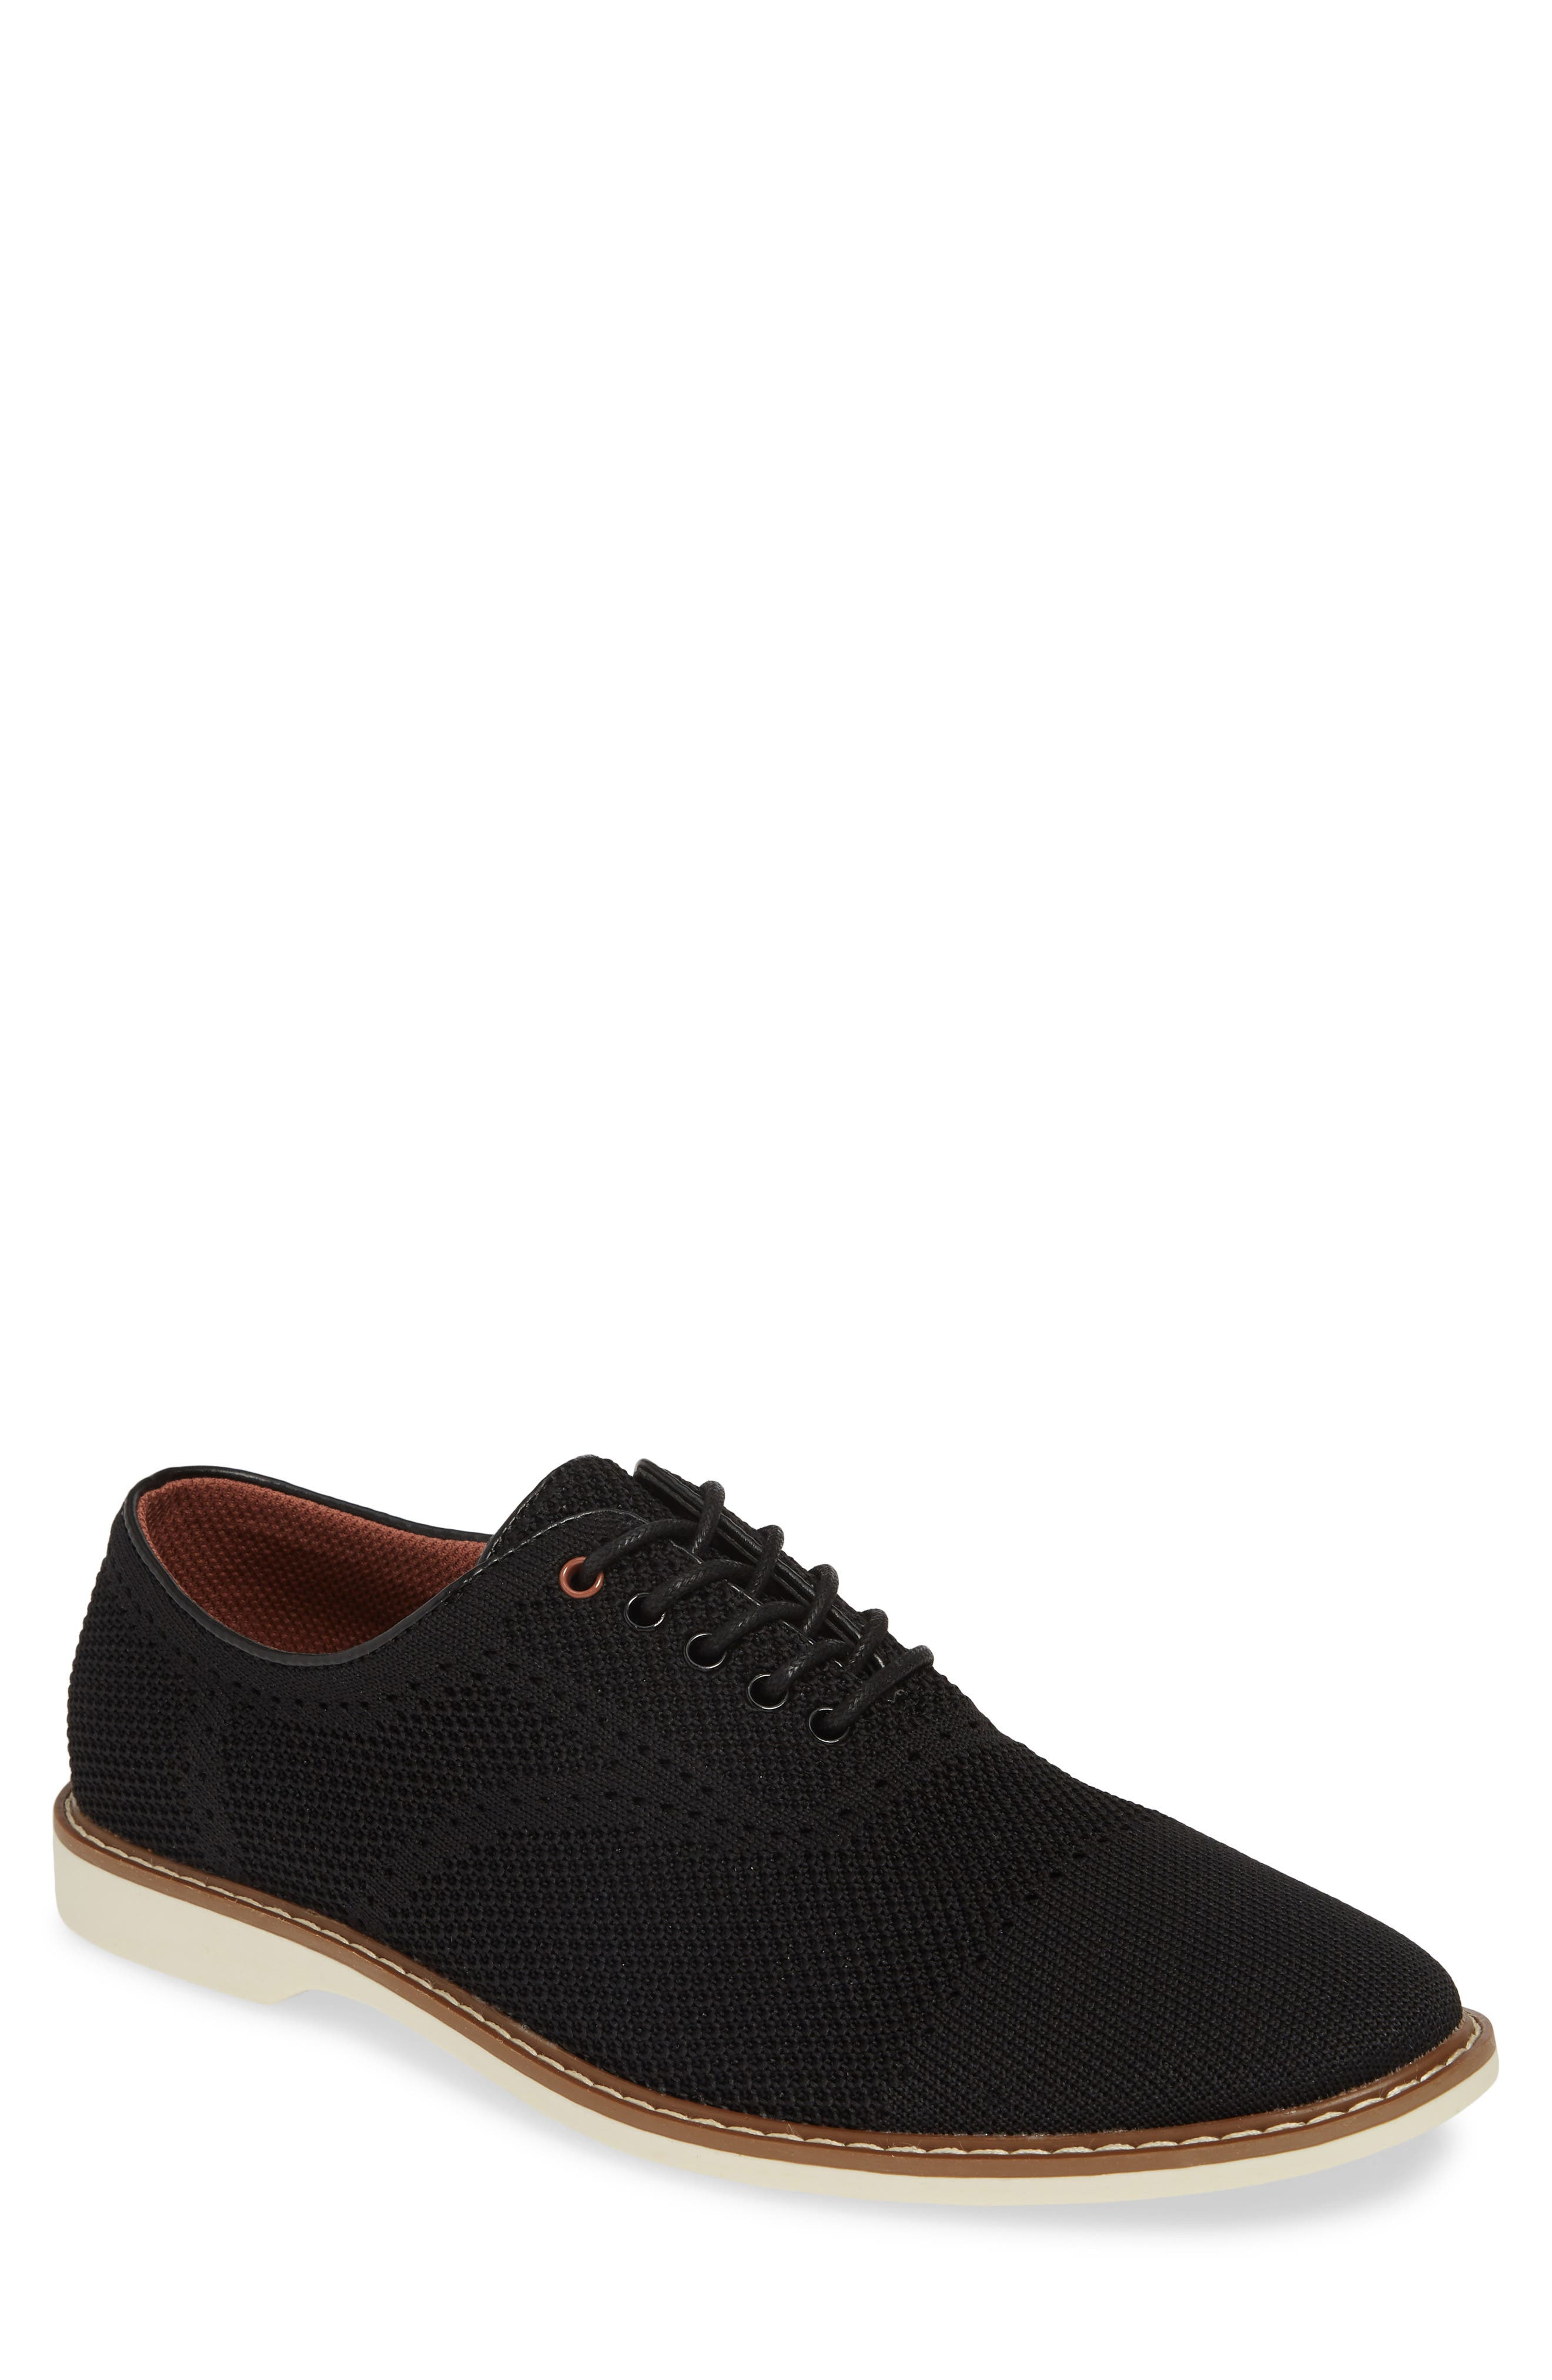 THE RAIL Jared Plain Toe Oxford, Main, color, BLACK